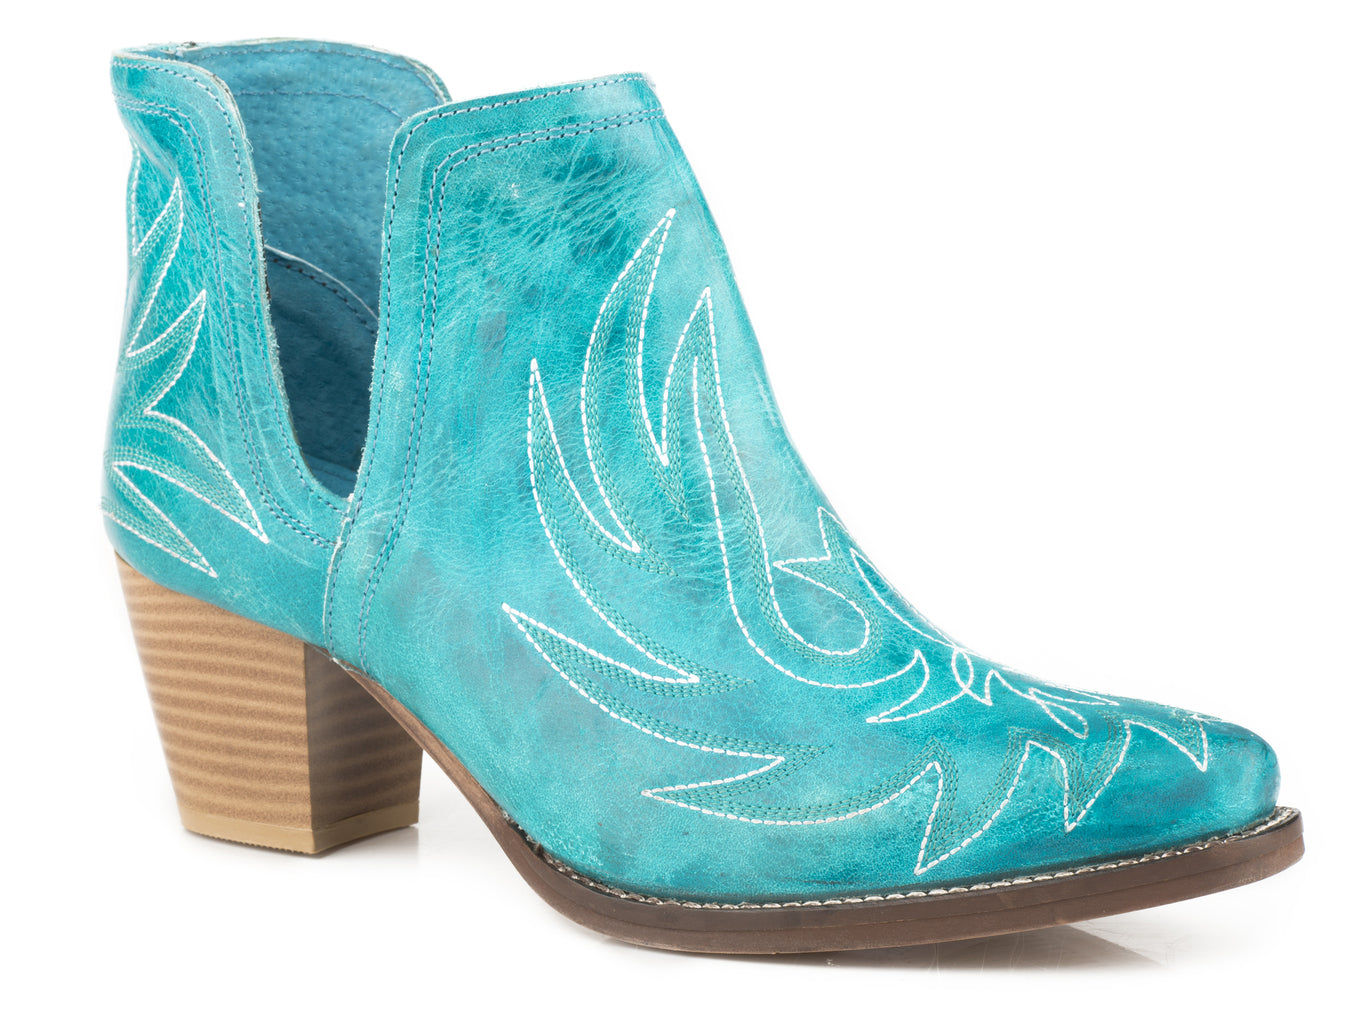 Roper Womens Turquoise Leather Ankle Boots - Roper - Breeches.com